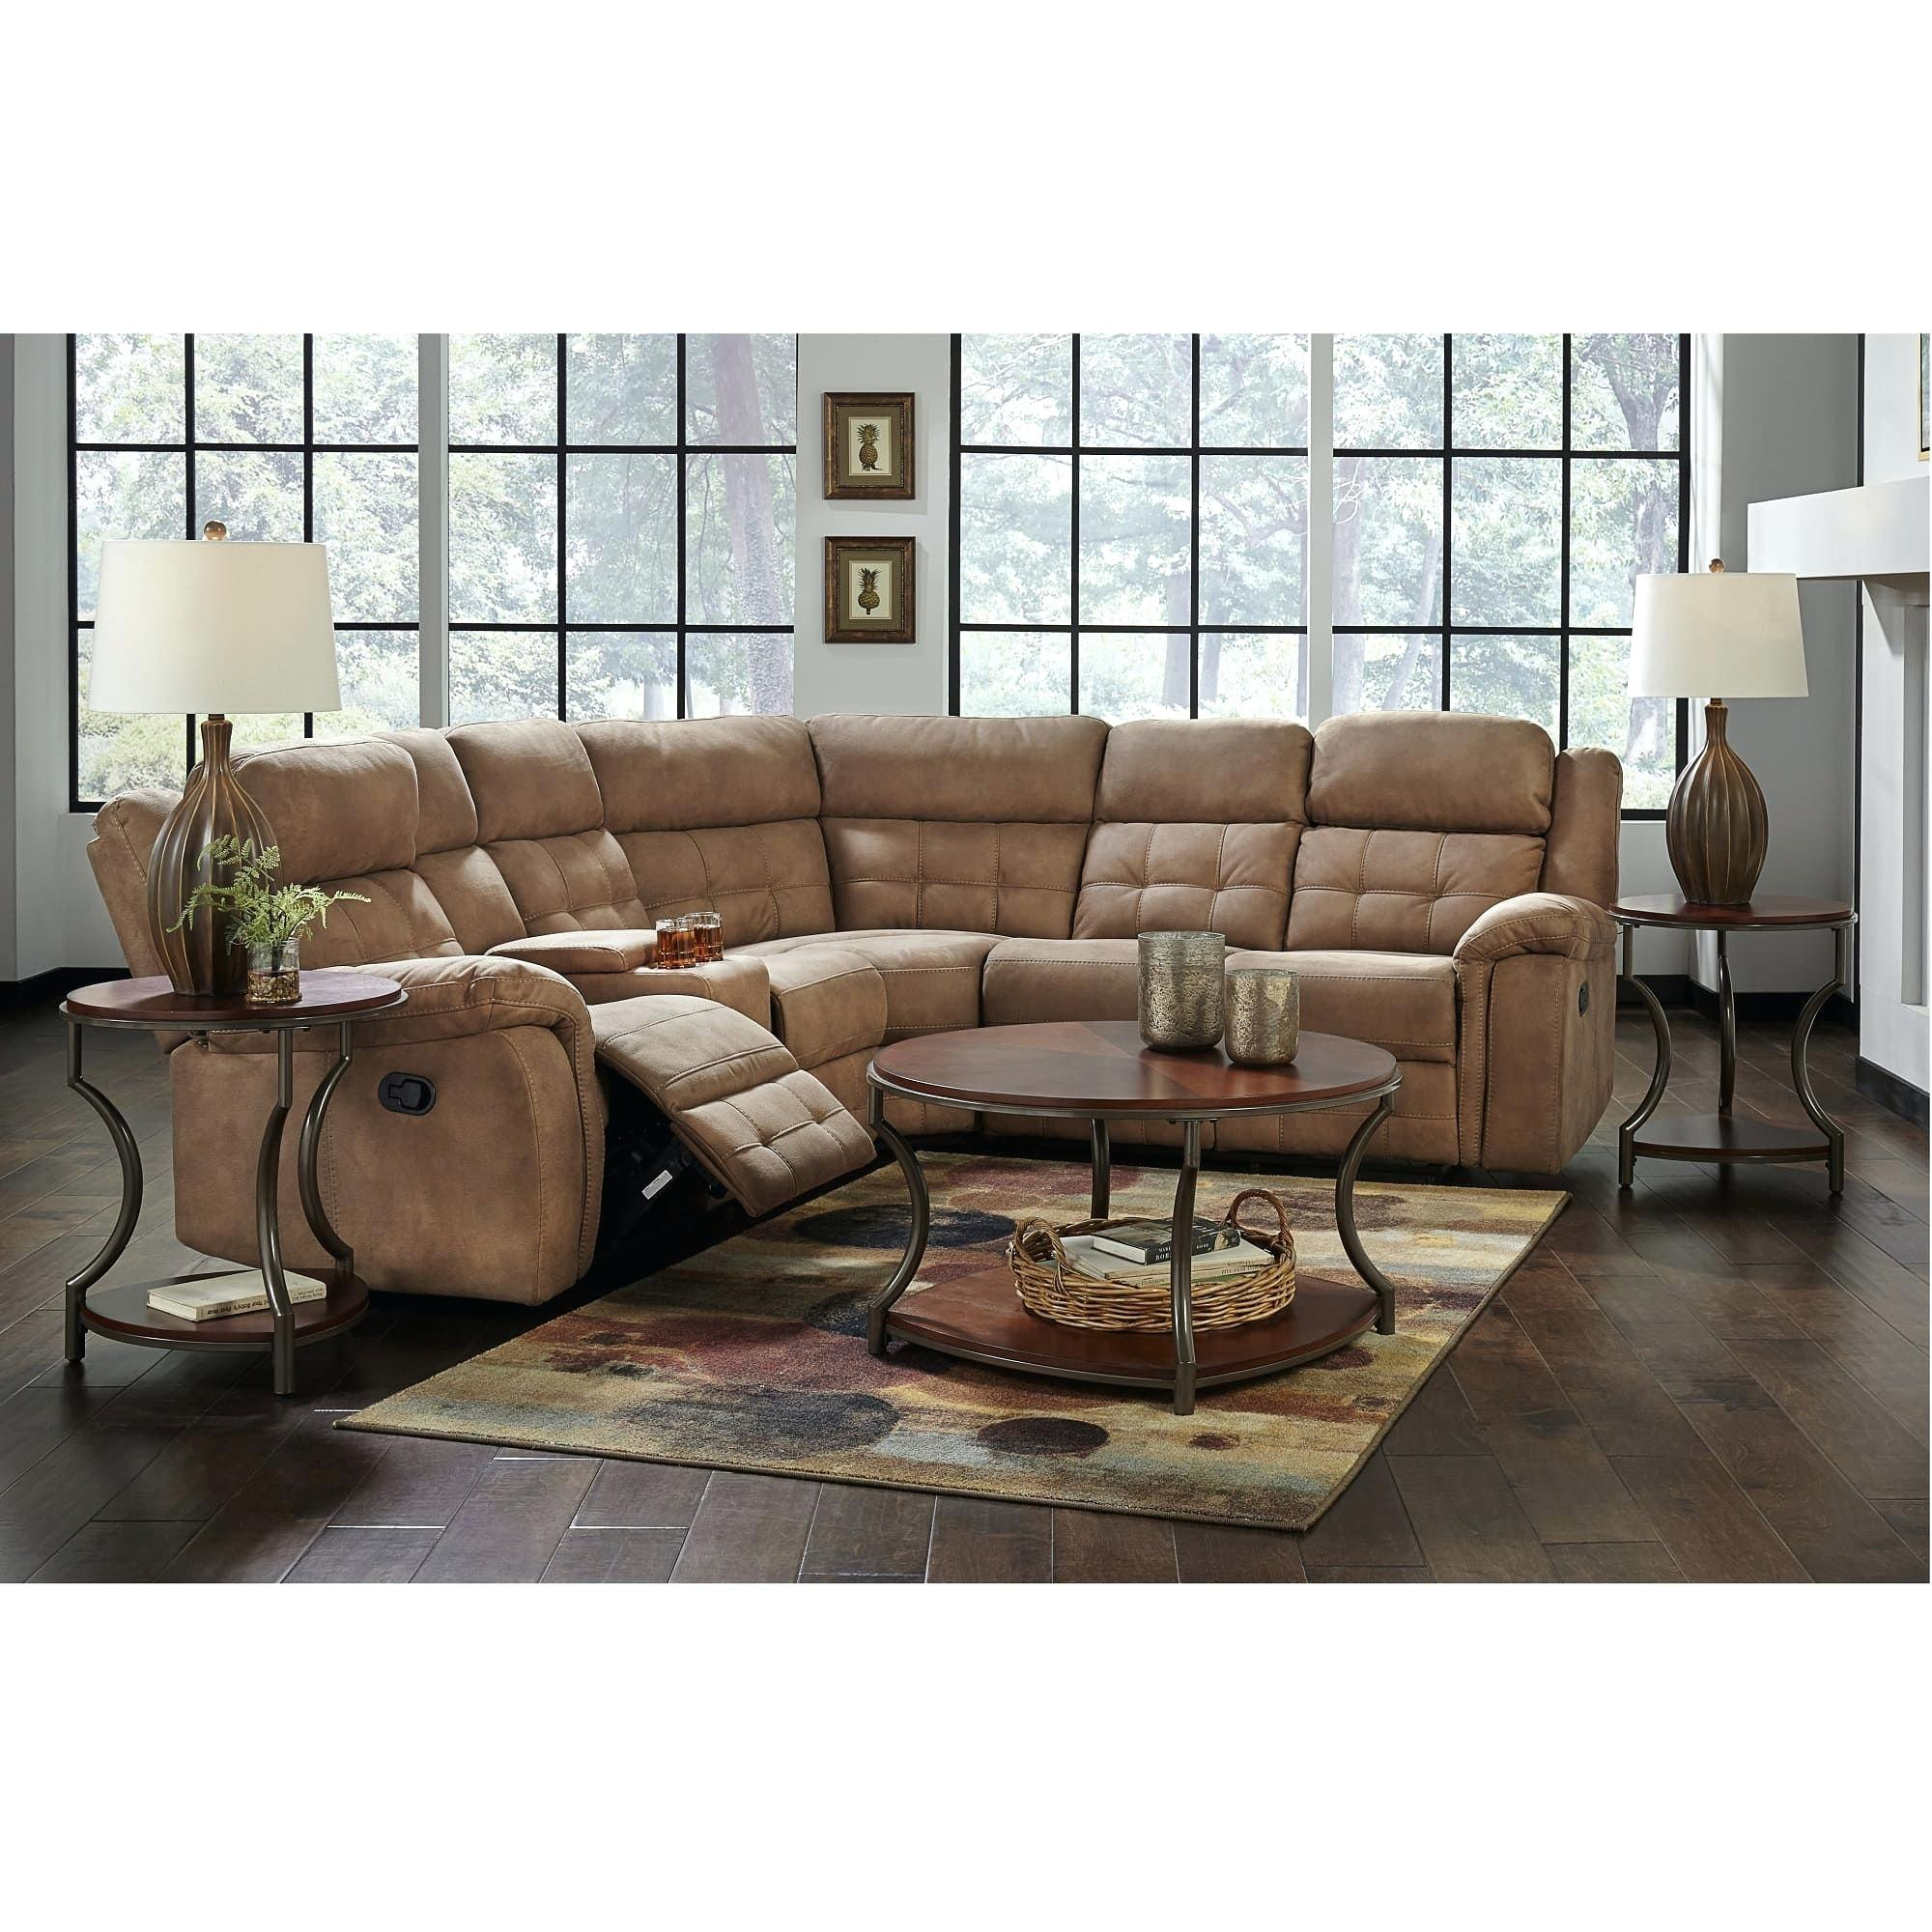 Rent To Own Couches Rent To Own Furniture Living Room Sets A Modern in Rent A Center Living Room Sets